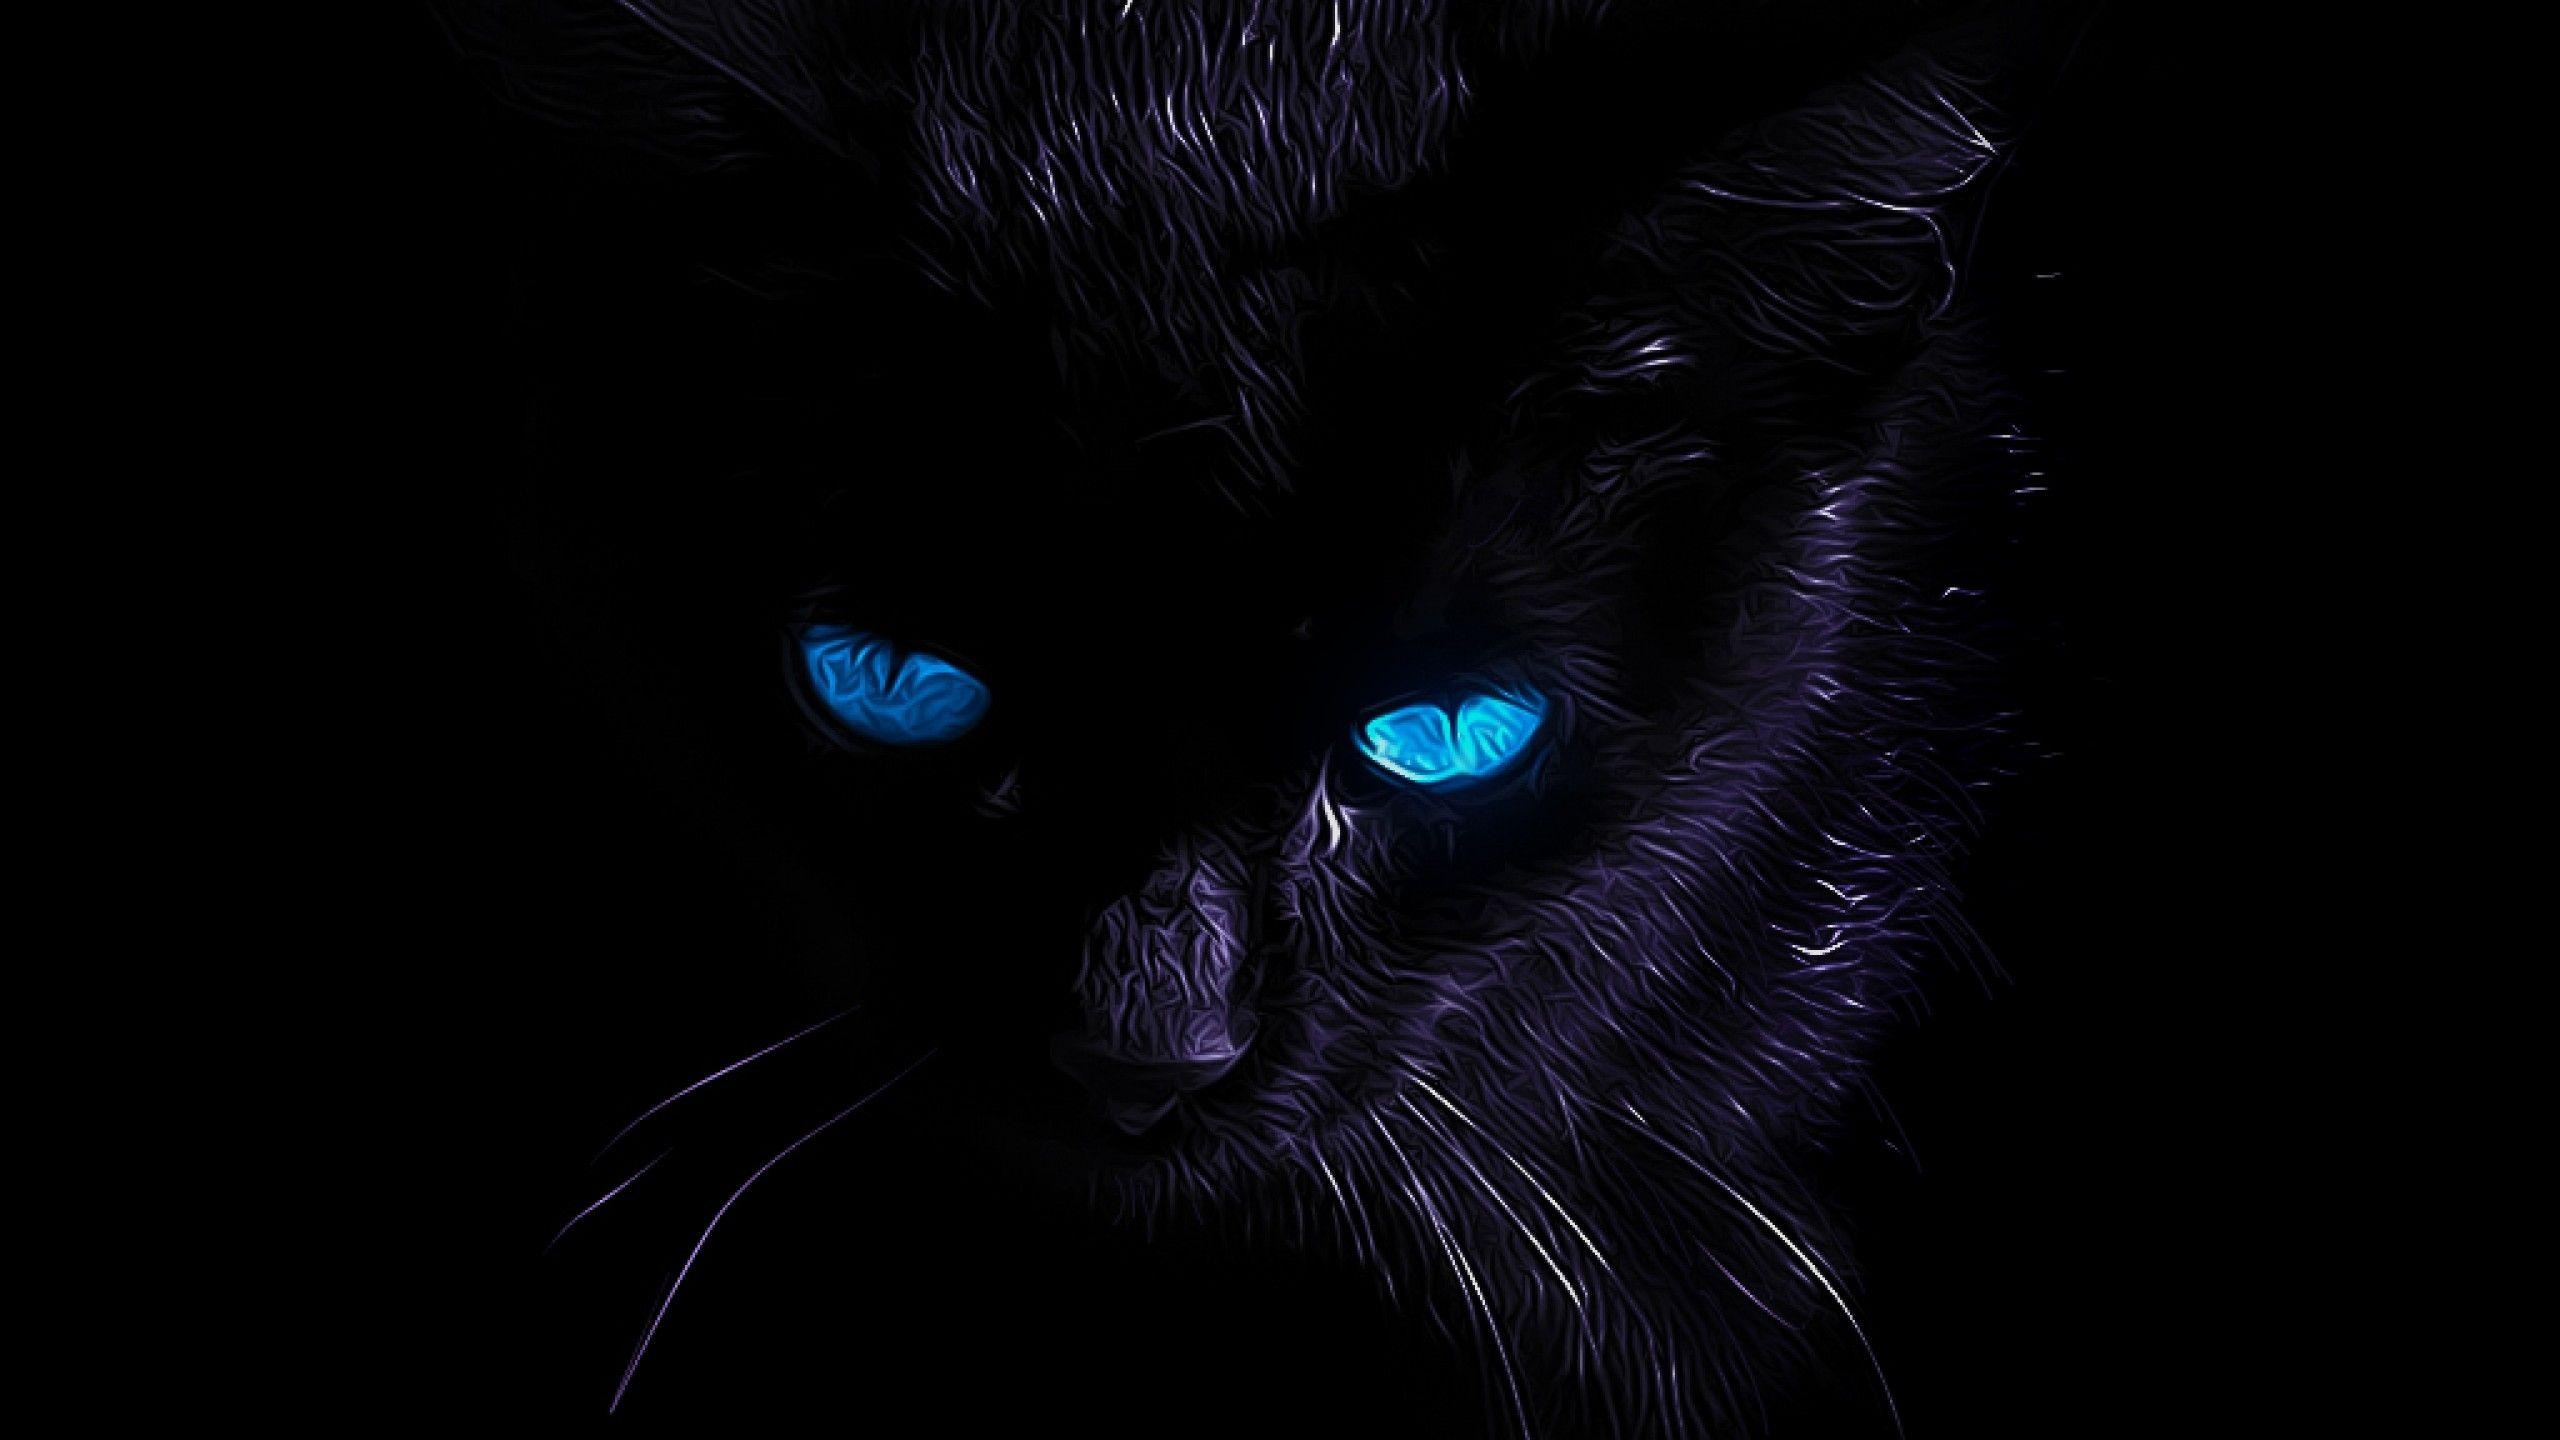 Blue Cat Wallpapers Top Free Blue Cat Backgrounds Wallpaperaccess